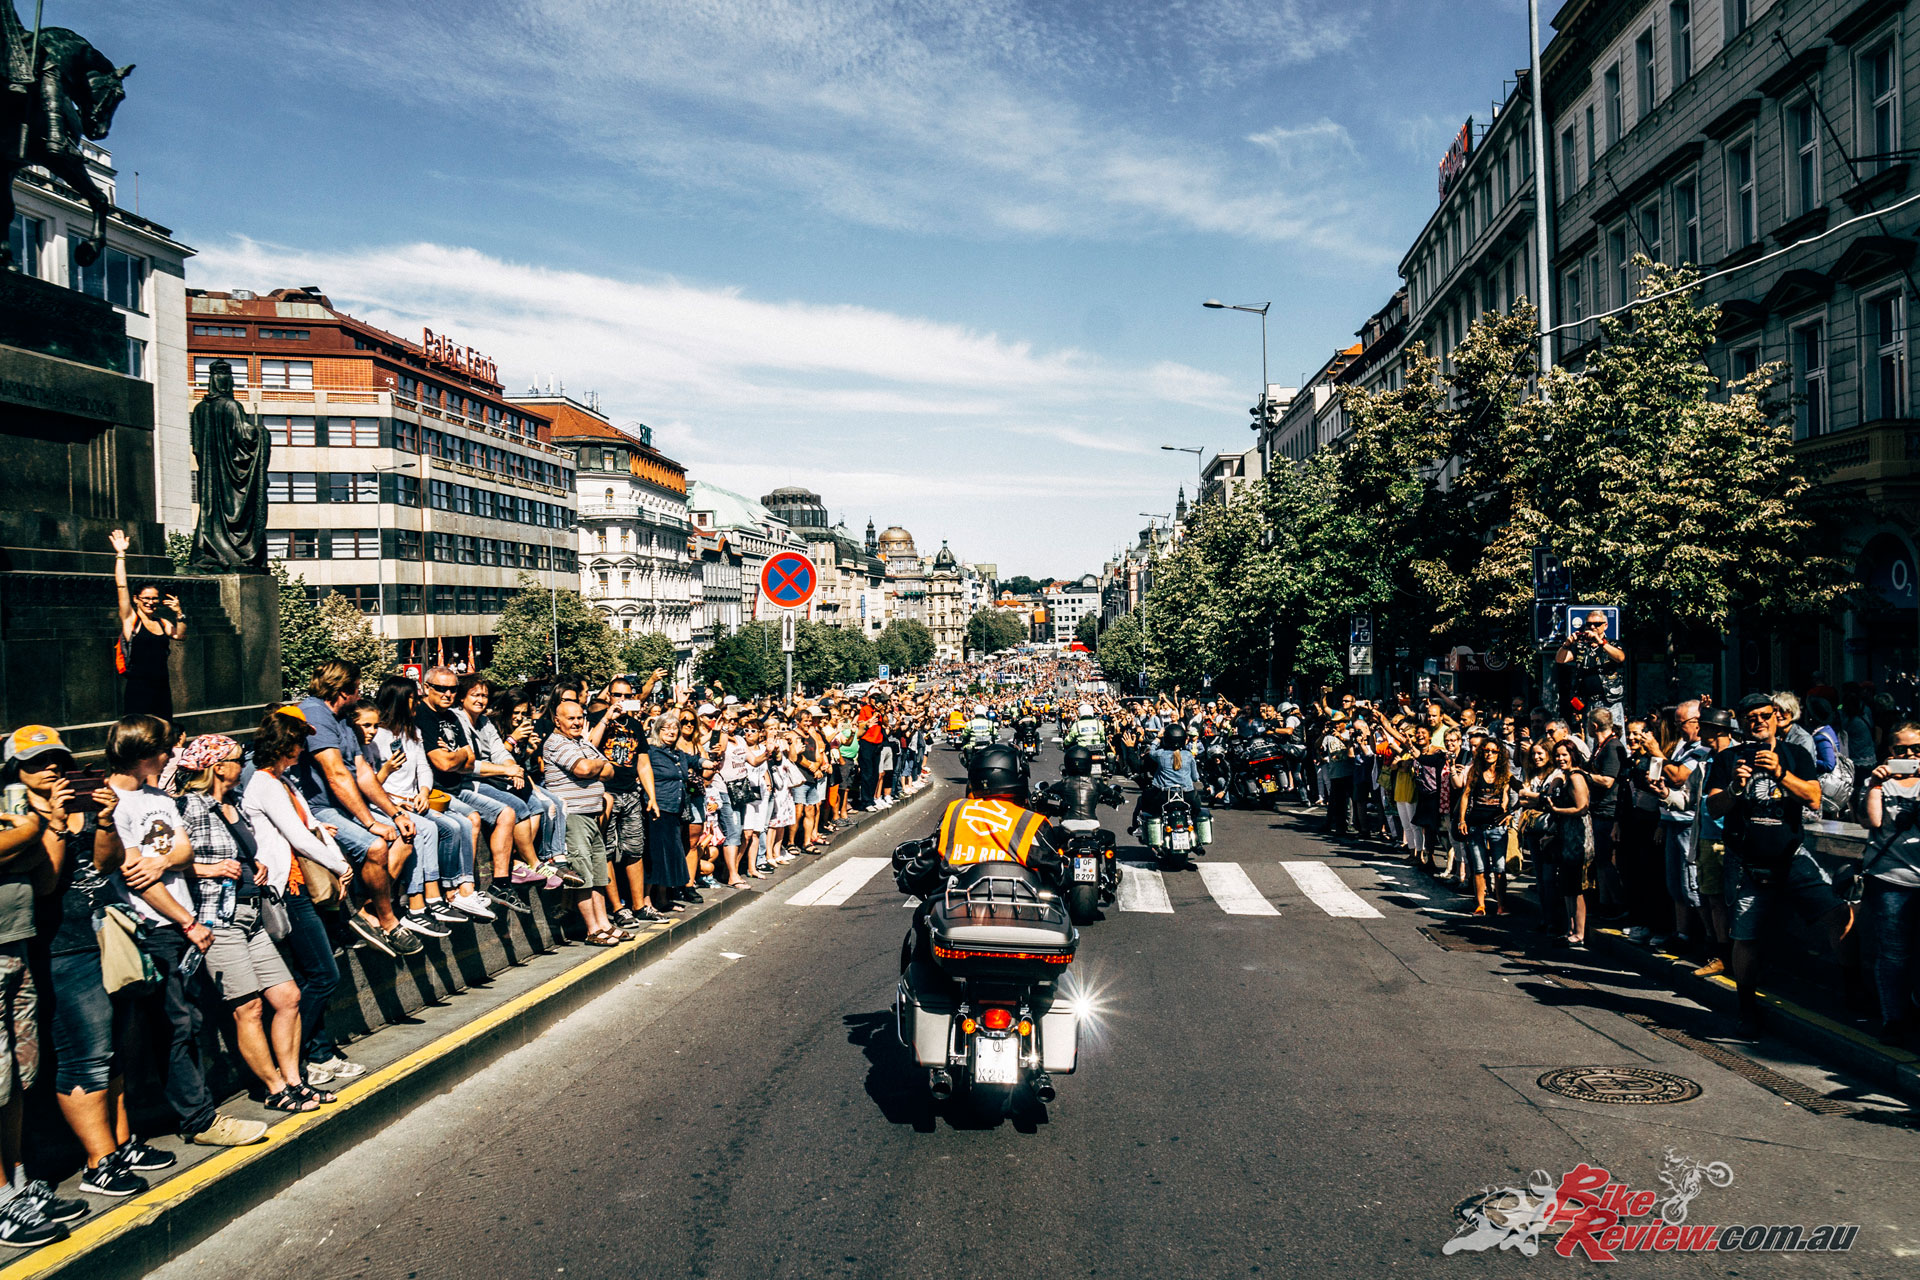 Harley Davidson Parade: Harley Celebrates 115th Anniversary With Prague Party